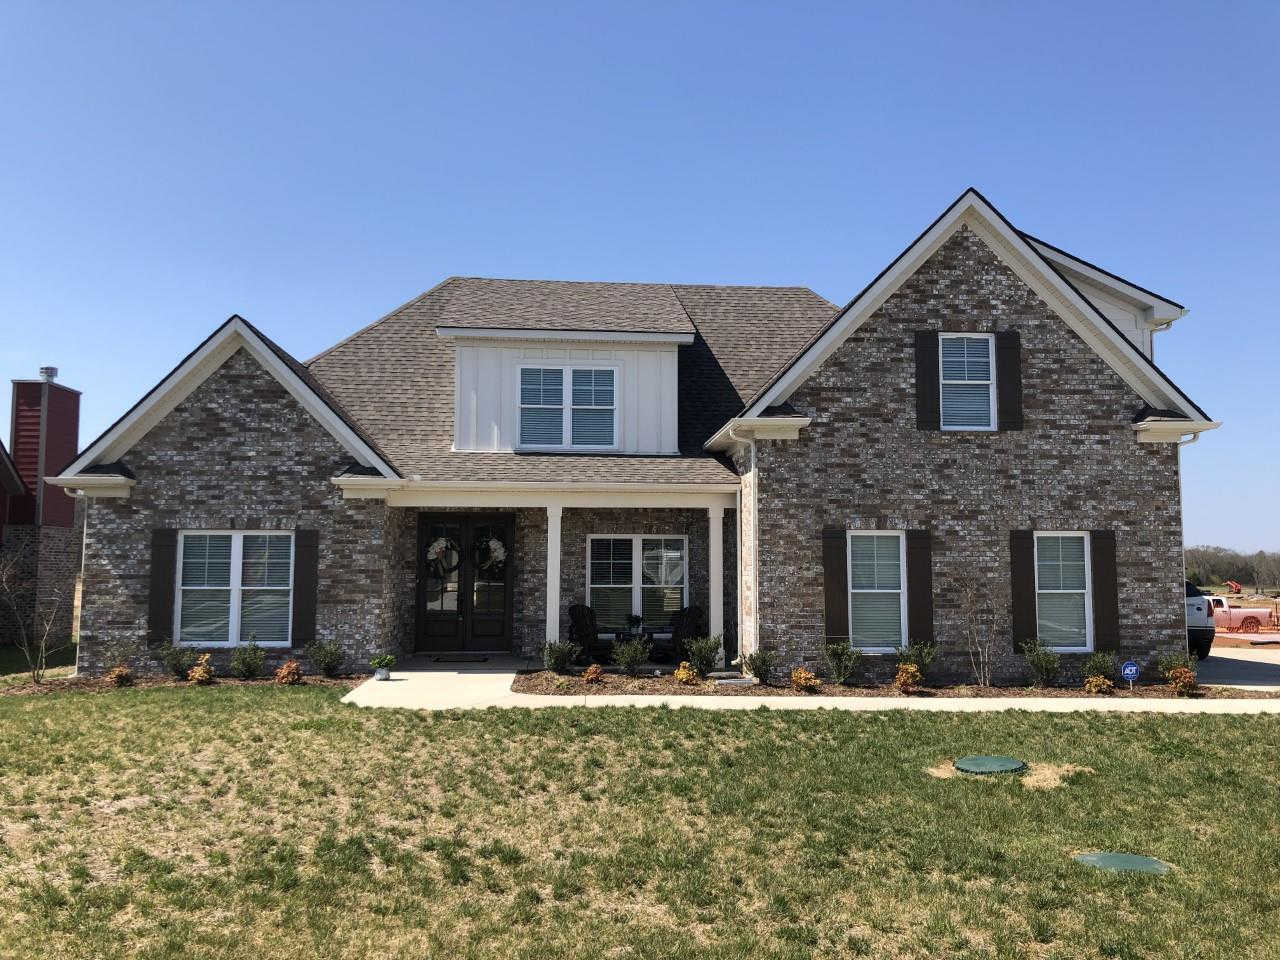 2053 Trout Trl, Murfreesboro, TN 37129 now has a new price of $409,900!